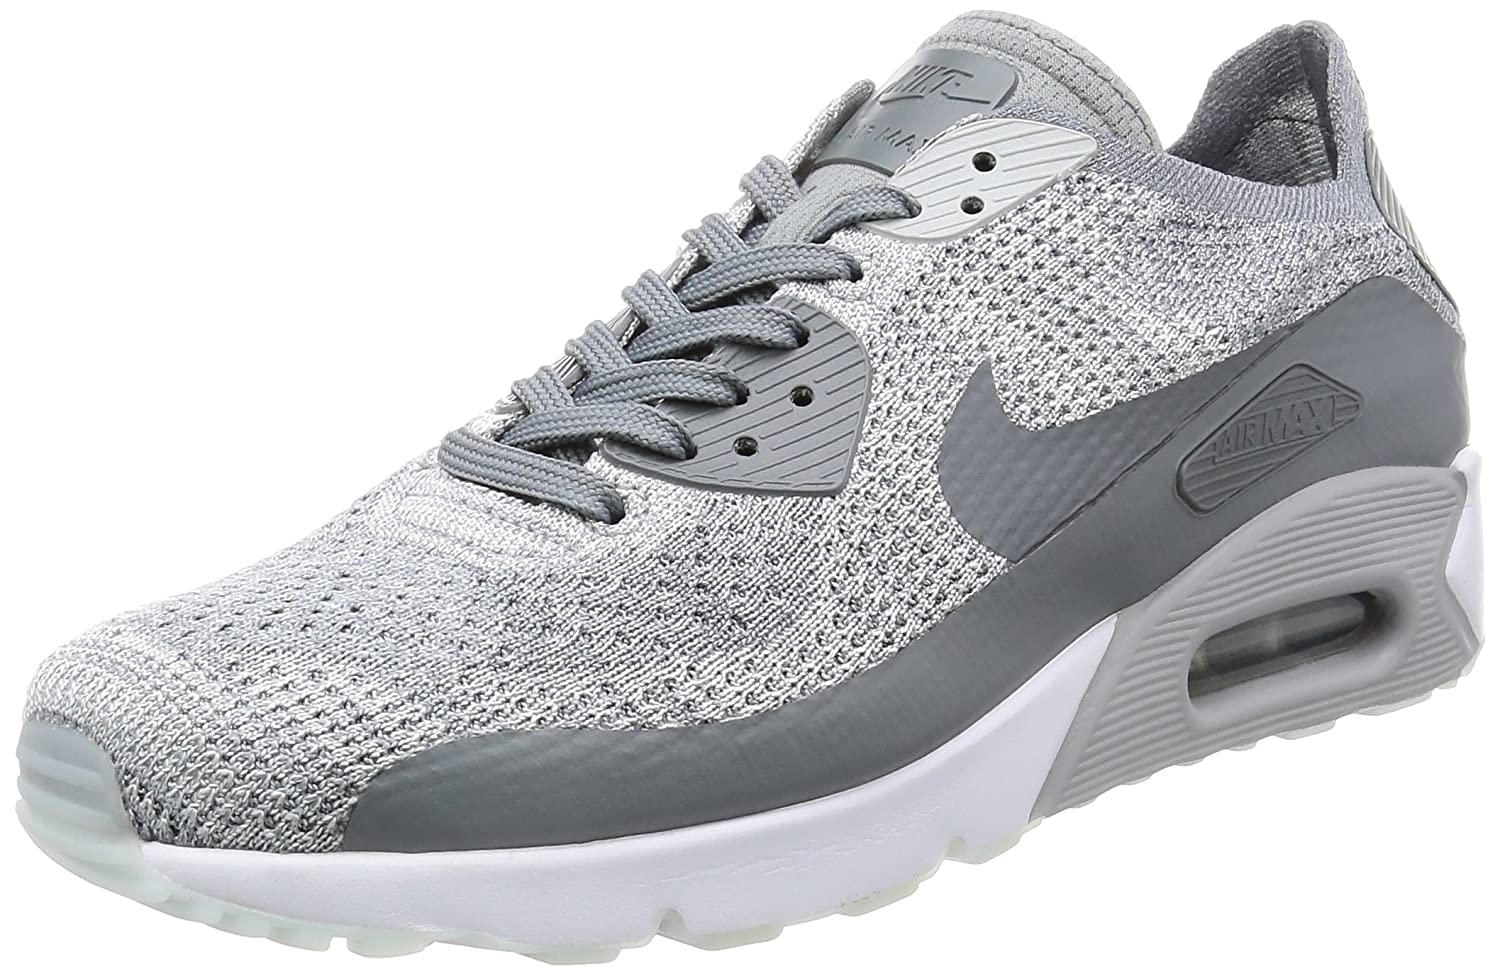 half off 22ab6 addea Amazon.com   Nike AIR MAX 90 Ultra 2.0 Flyknit Mens Running-Shoes  875943-003 9.5 - Pure Platinum Cool Grey-White-Wolf Grey   Fashion Sneakers